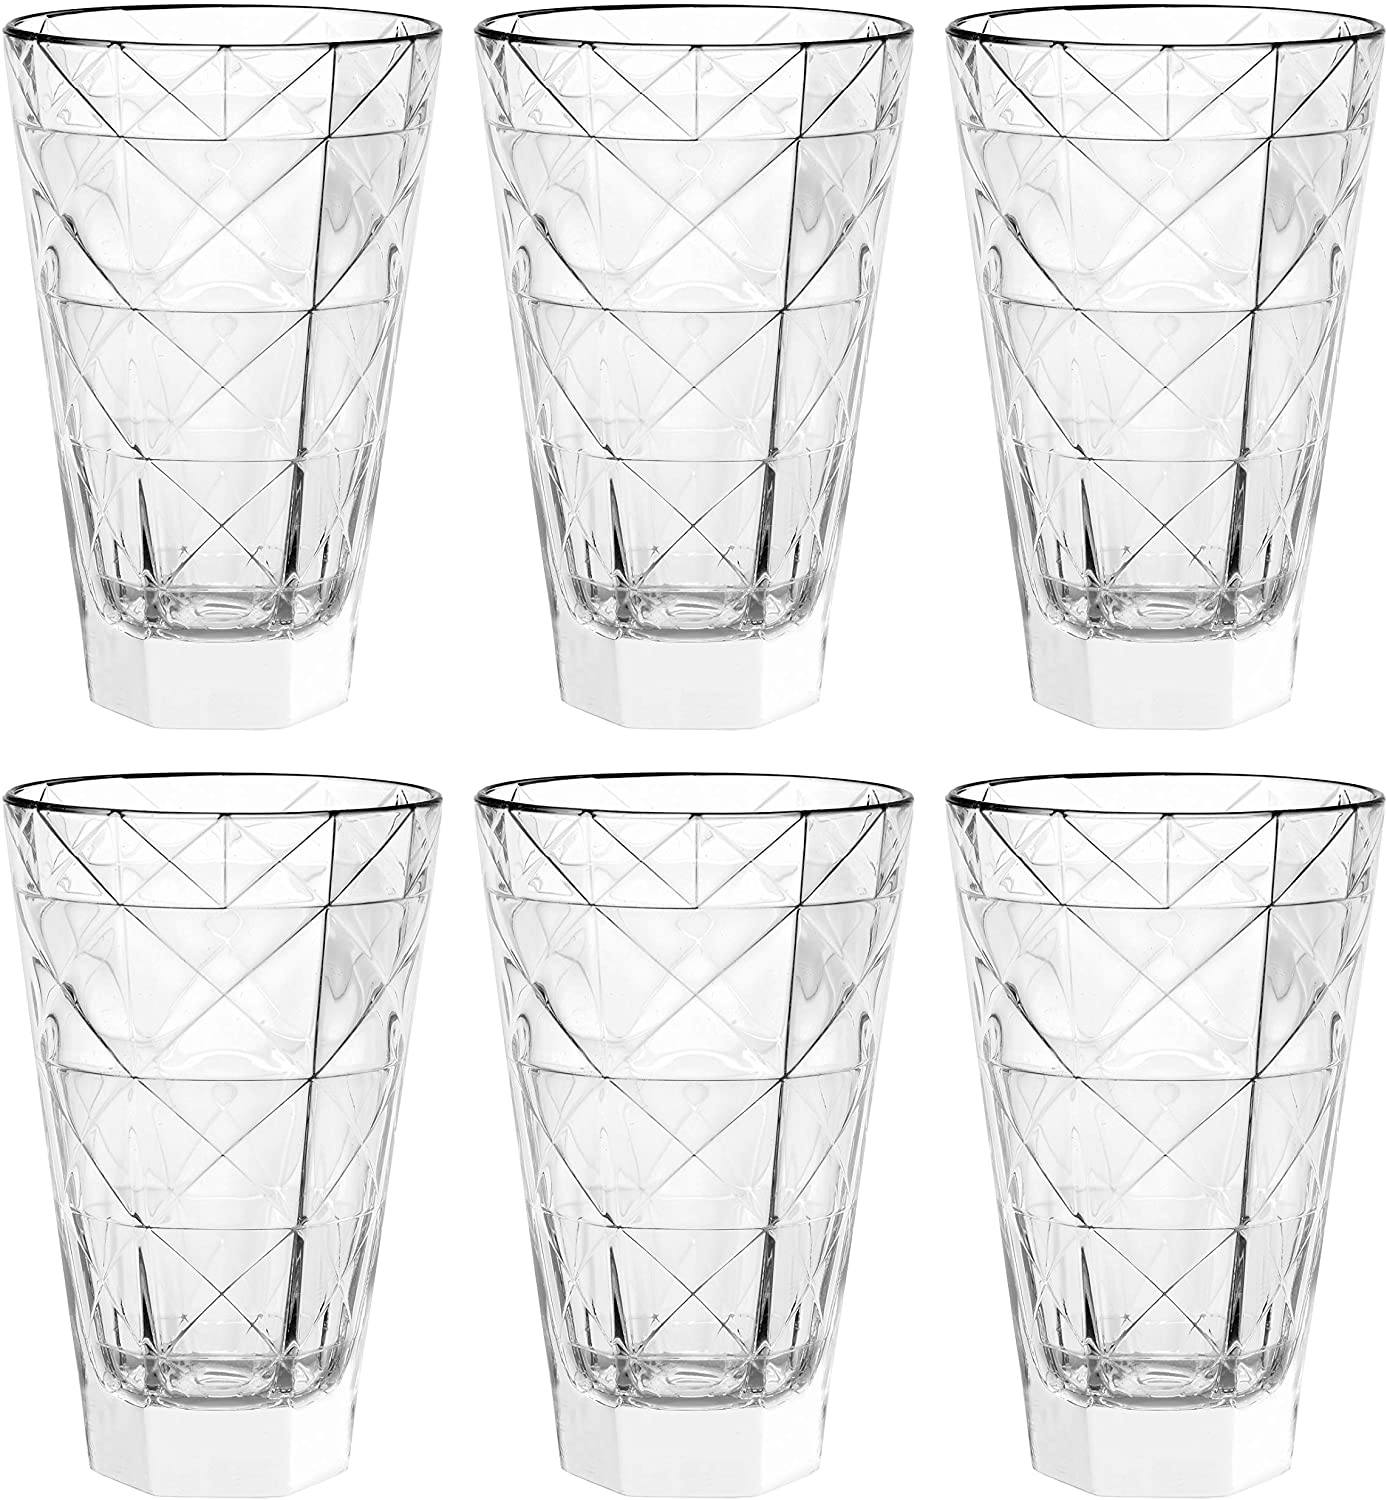 Barski - European Glass - Hiball Tumbler - Artistically Designed - 14.5 oz. - Set of 6 Highball Glasses - Made in Europe